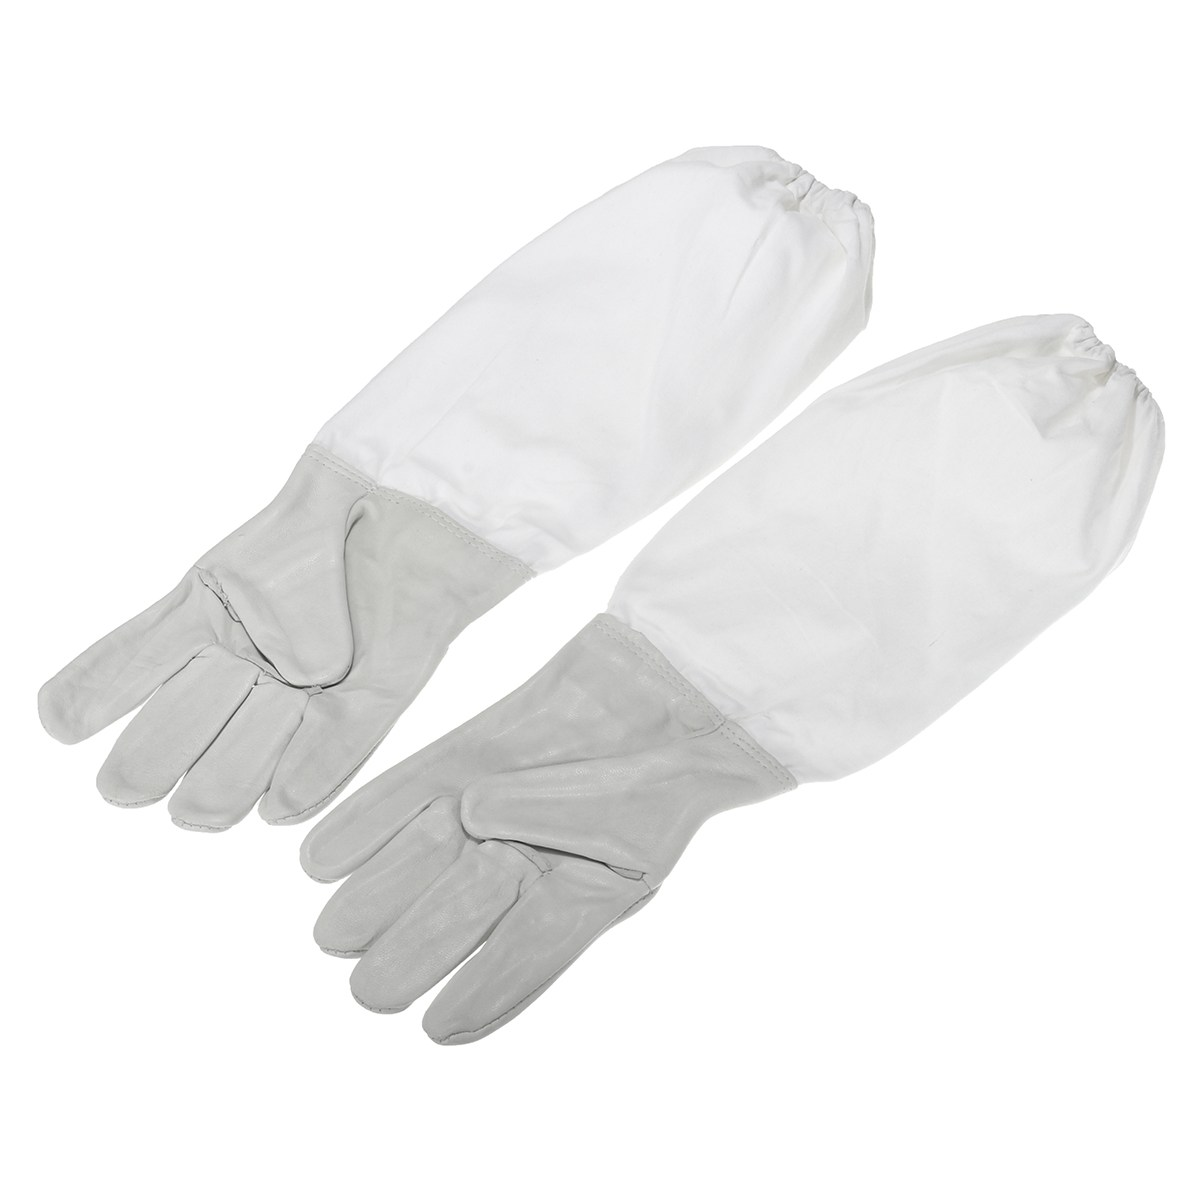 Safurance 2 Pair Protective Vented Long Sleeves Sheepskin Bee Keeping Beekeeping Gloves Workplace Safety 6 frames reversible honey extractor for bee keeping